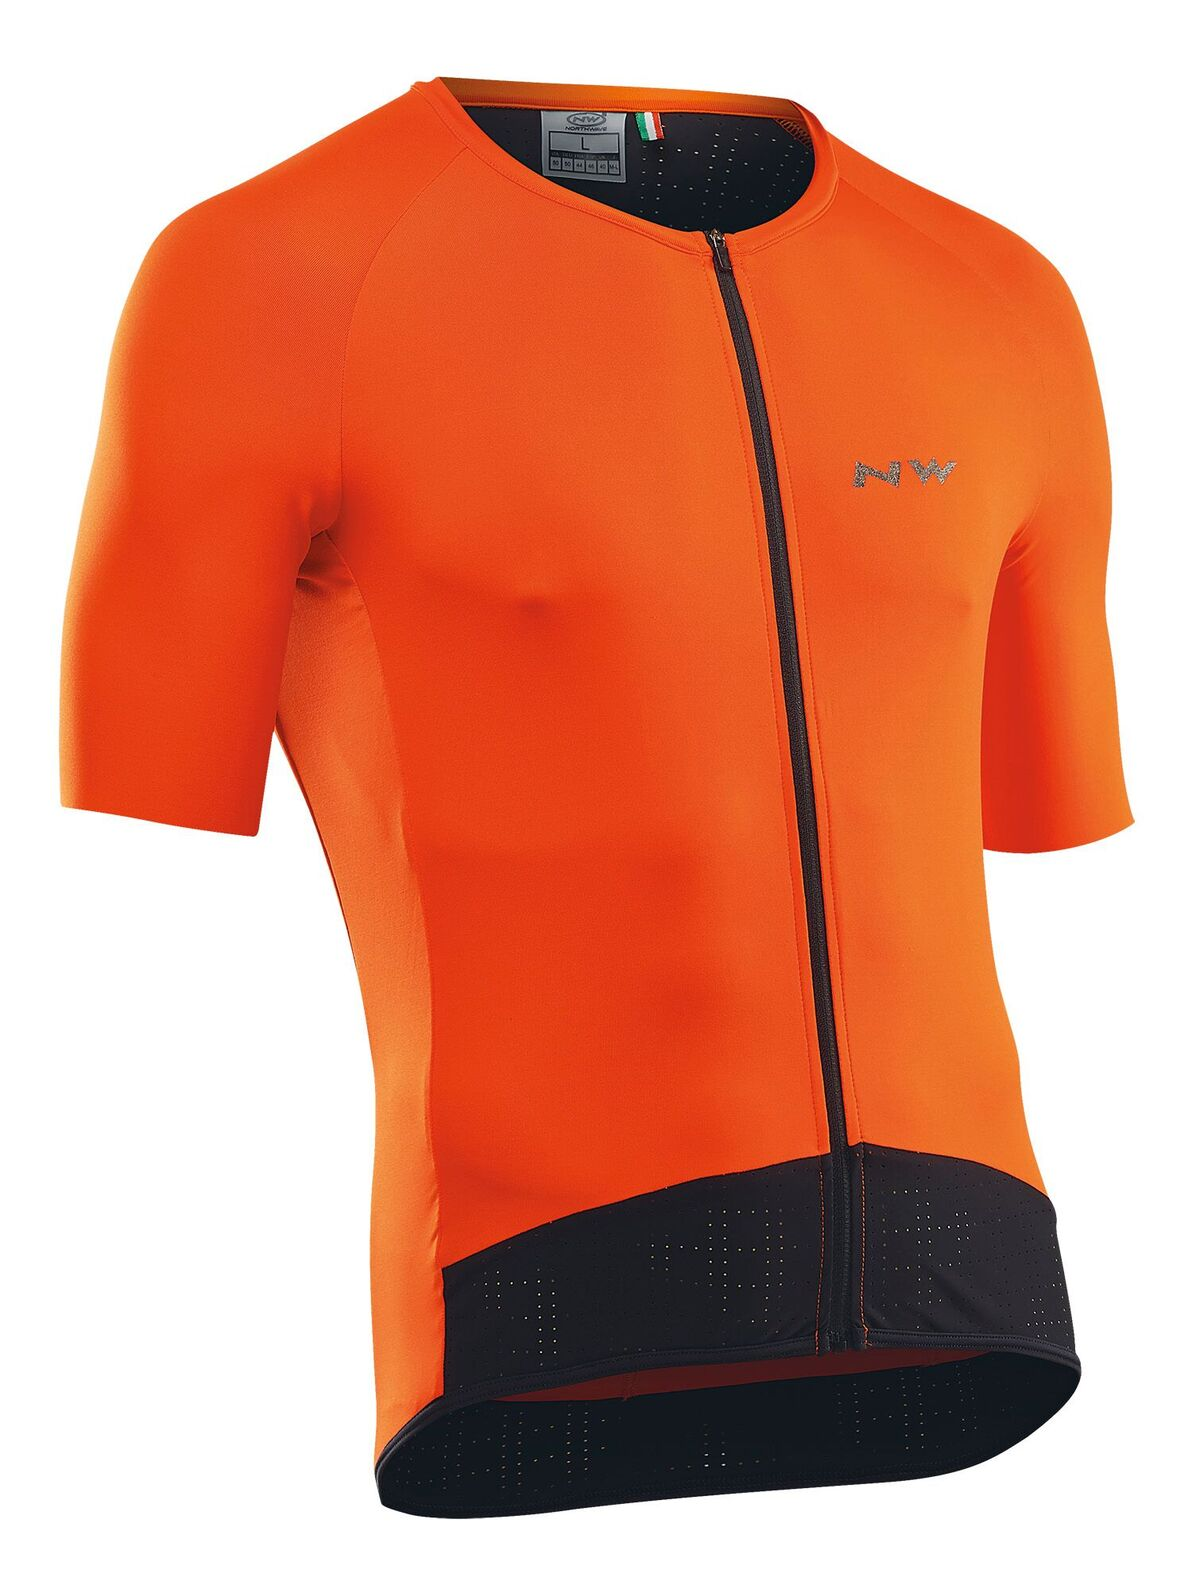 Maglia Ciclismo Maniche Corte Northwave Storm Air Jersey Short Sleeves ORANGE